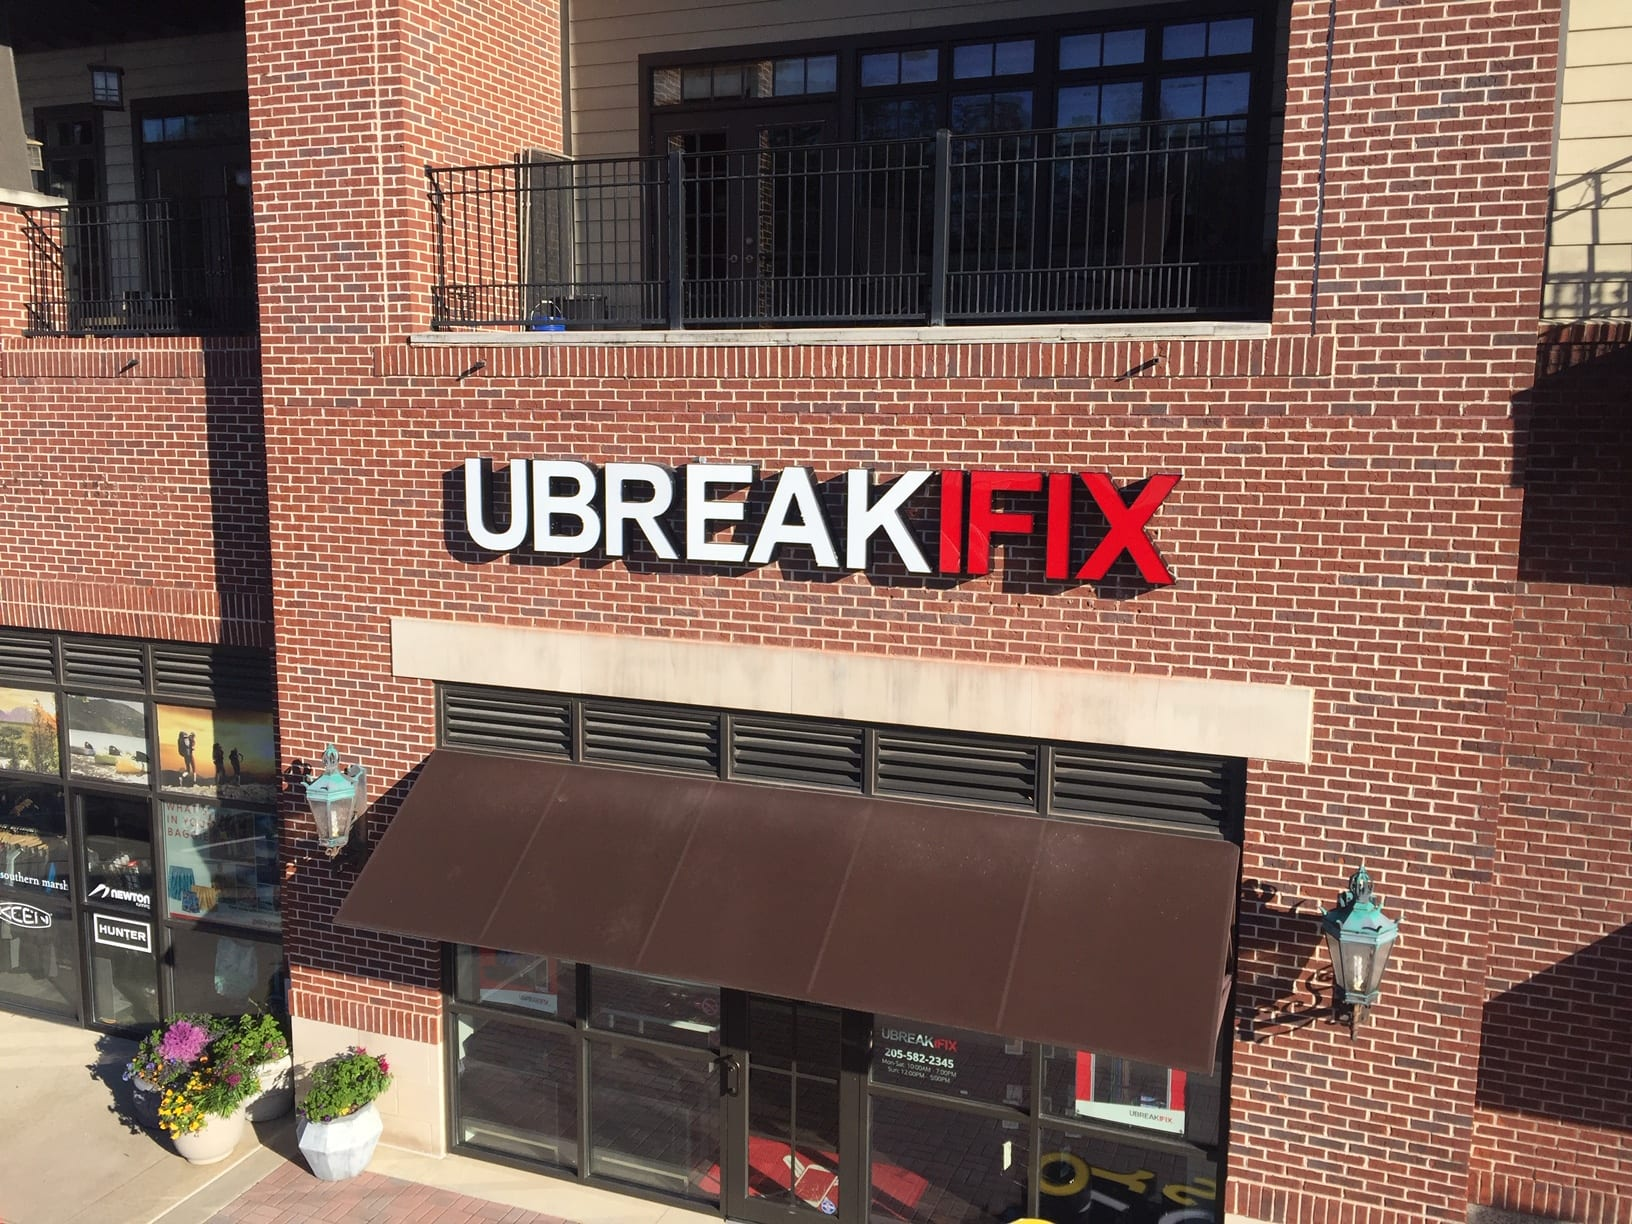 U Break I Fix, Mtn Brook, AL